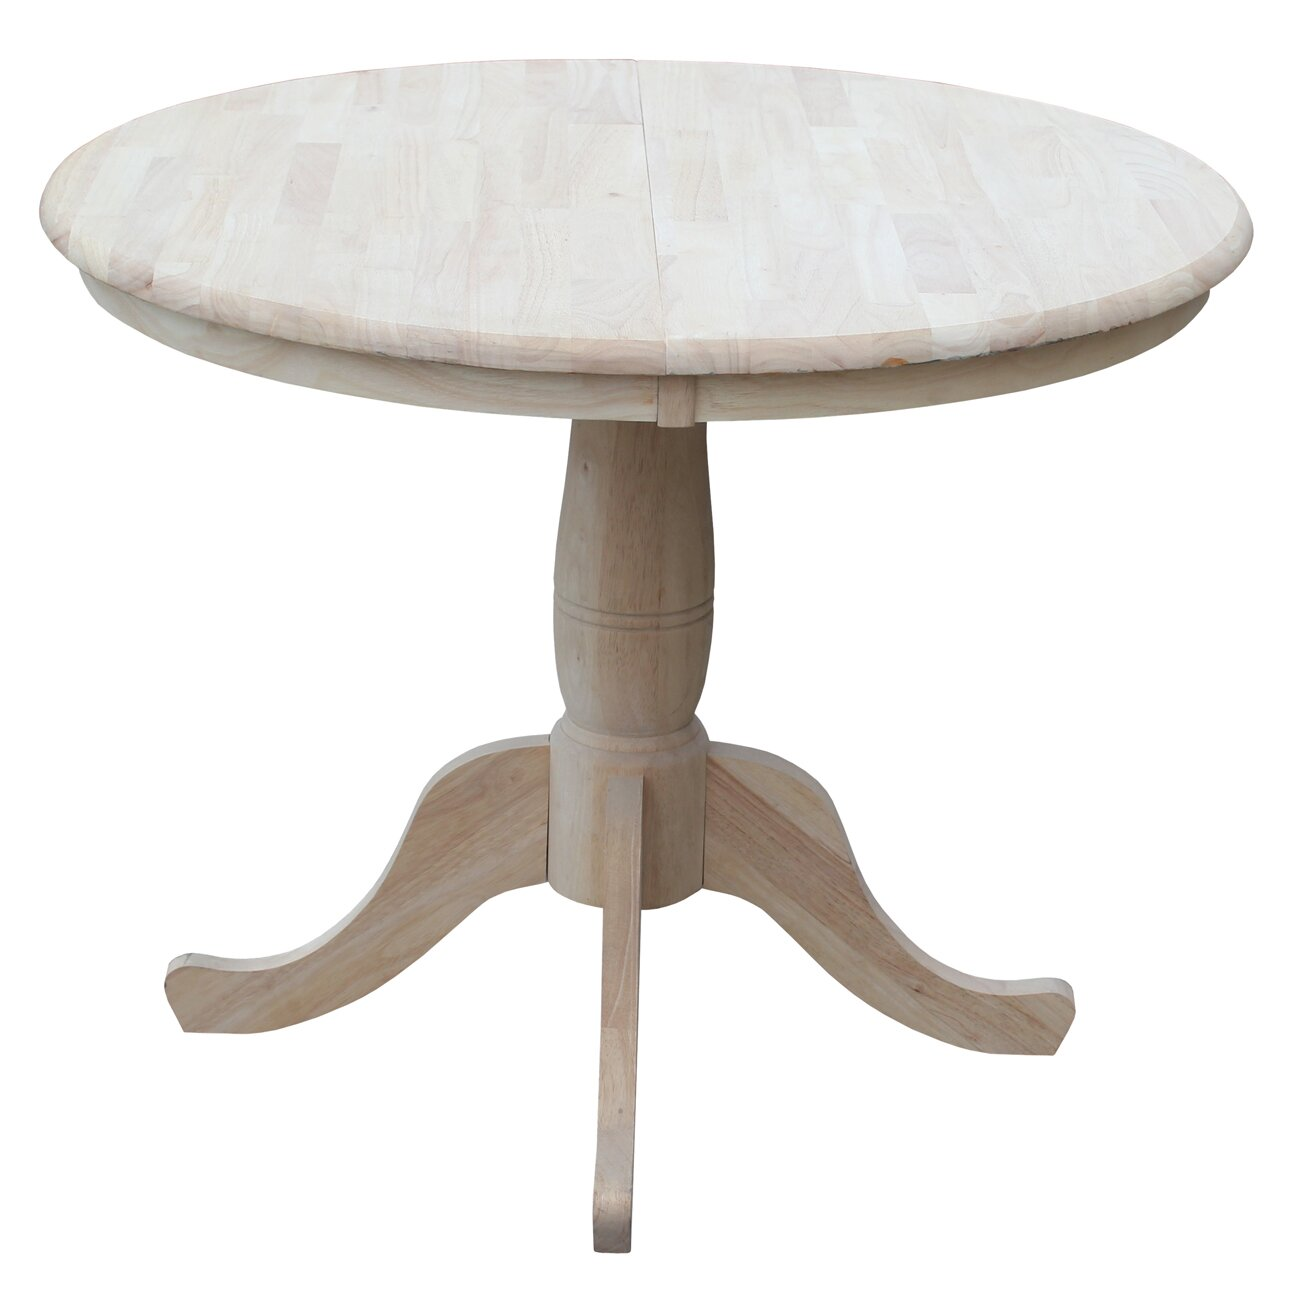 august grove 30 extendable round pedestal dining table reviews